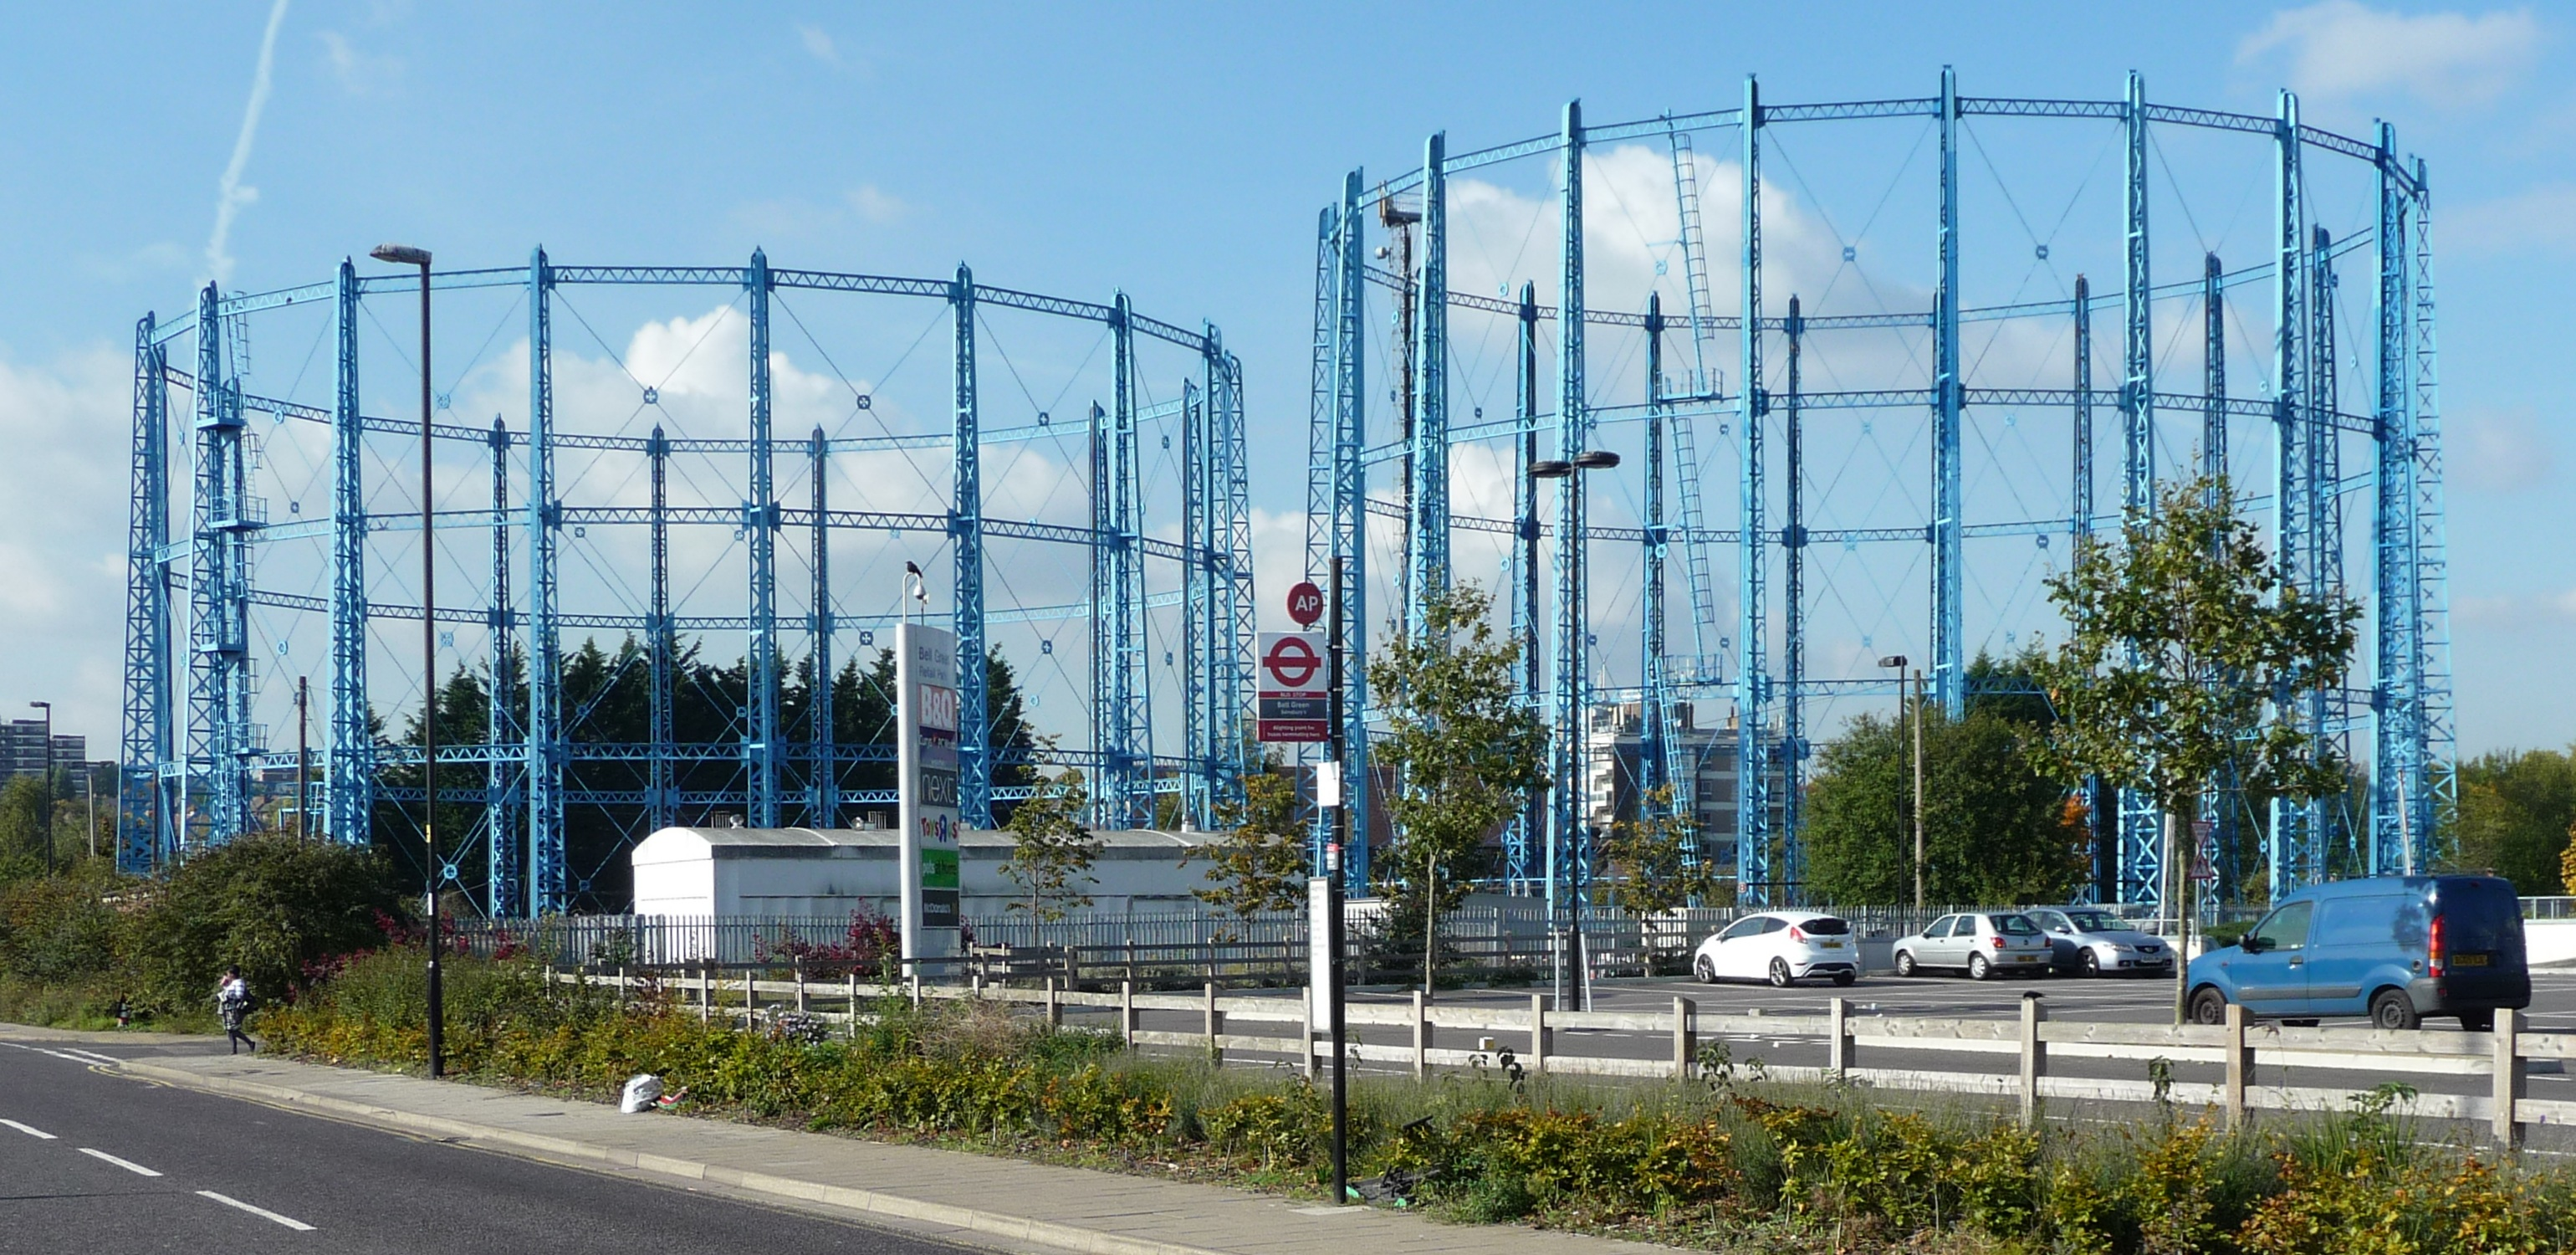 Gasholders 7 & 8 Bell Green, October 2015 � R Carr